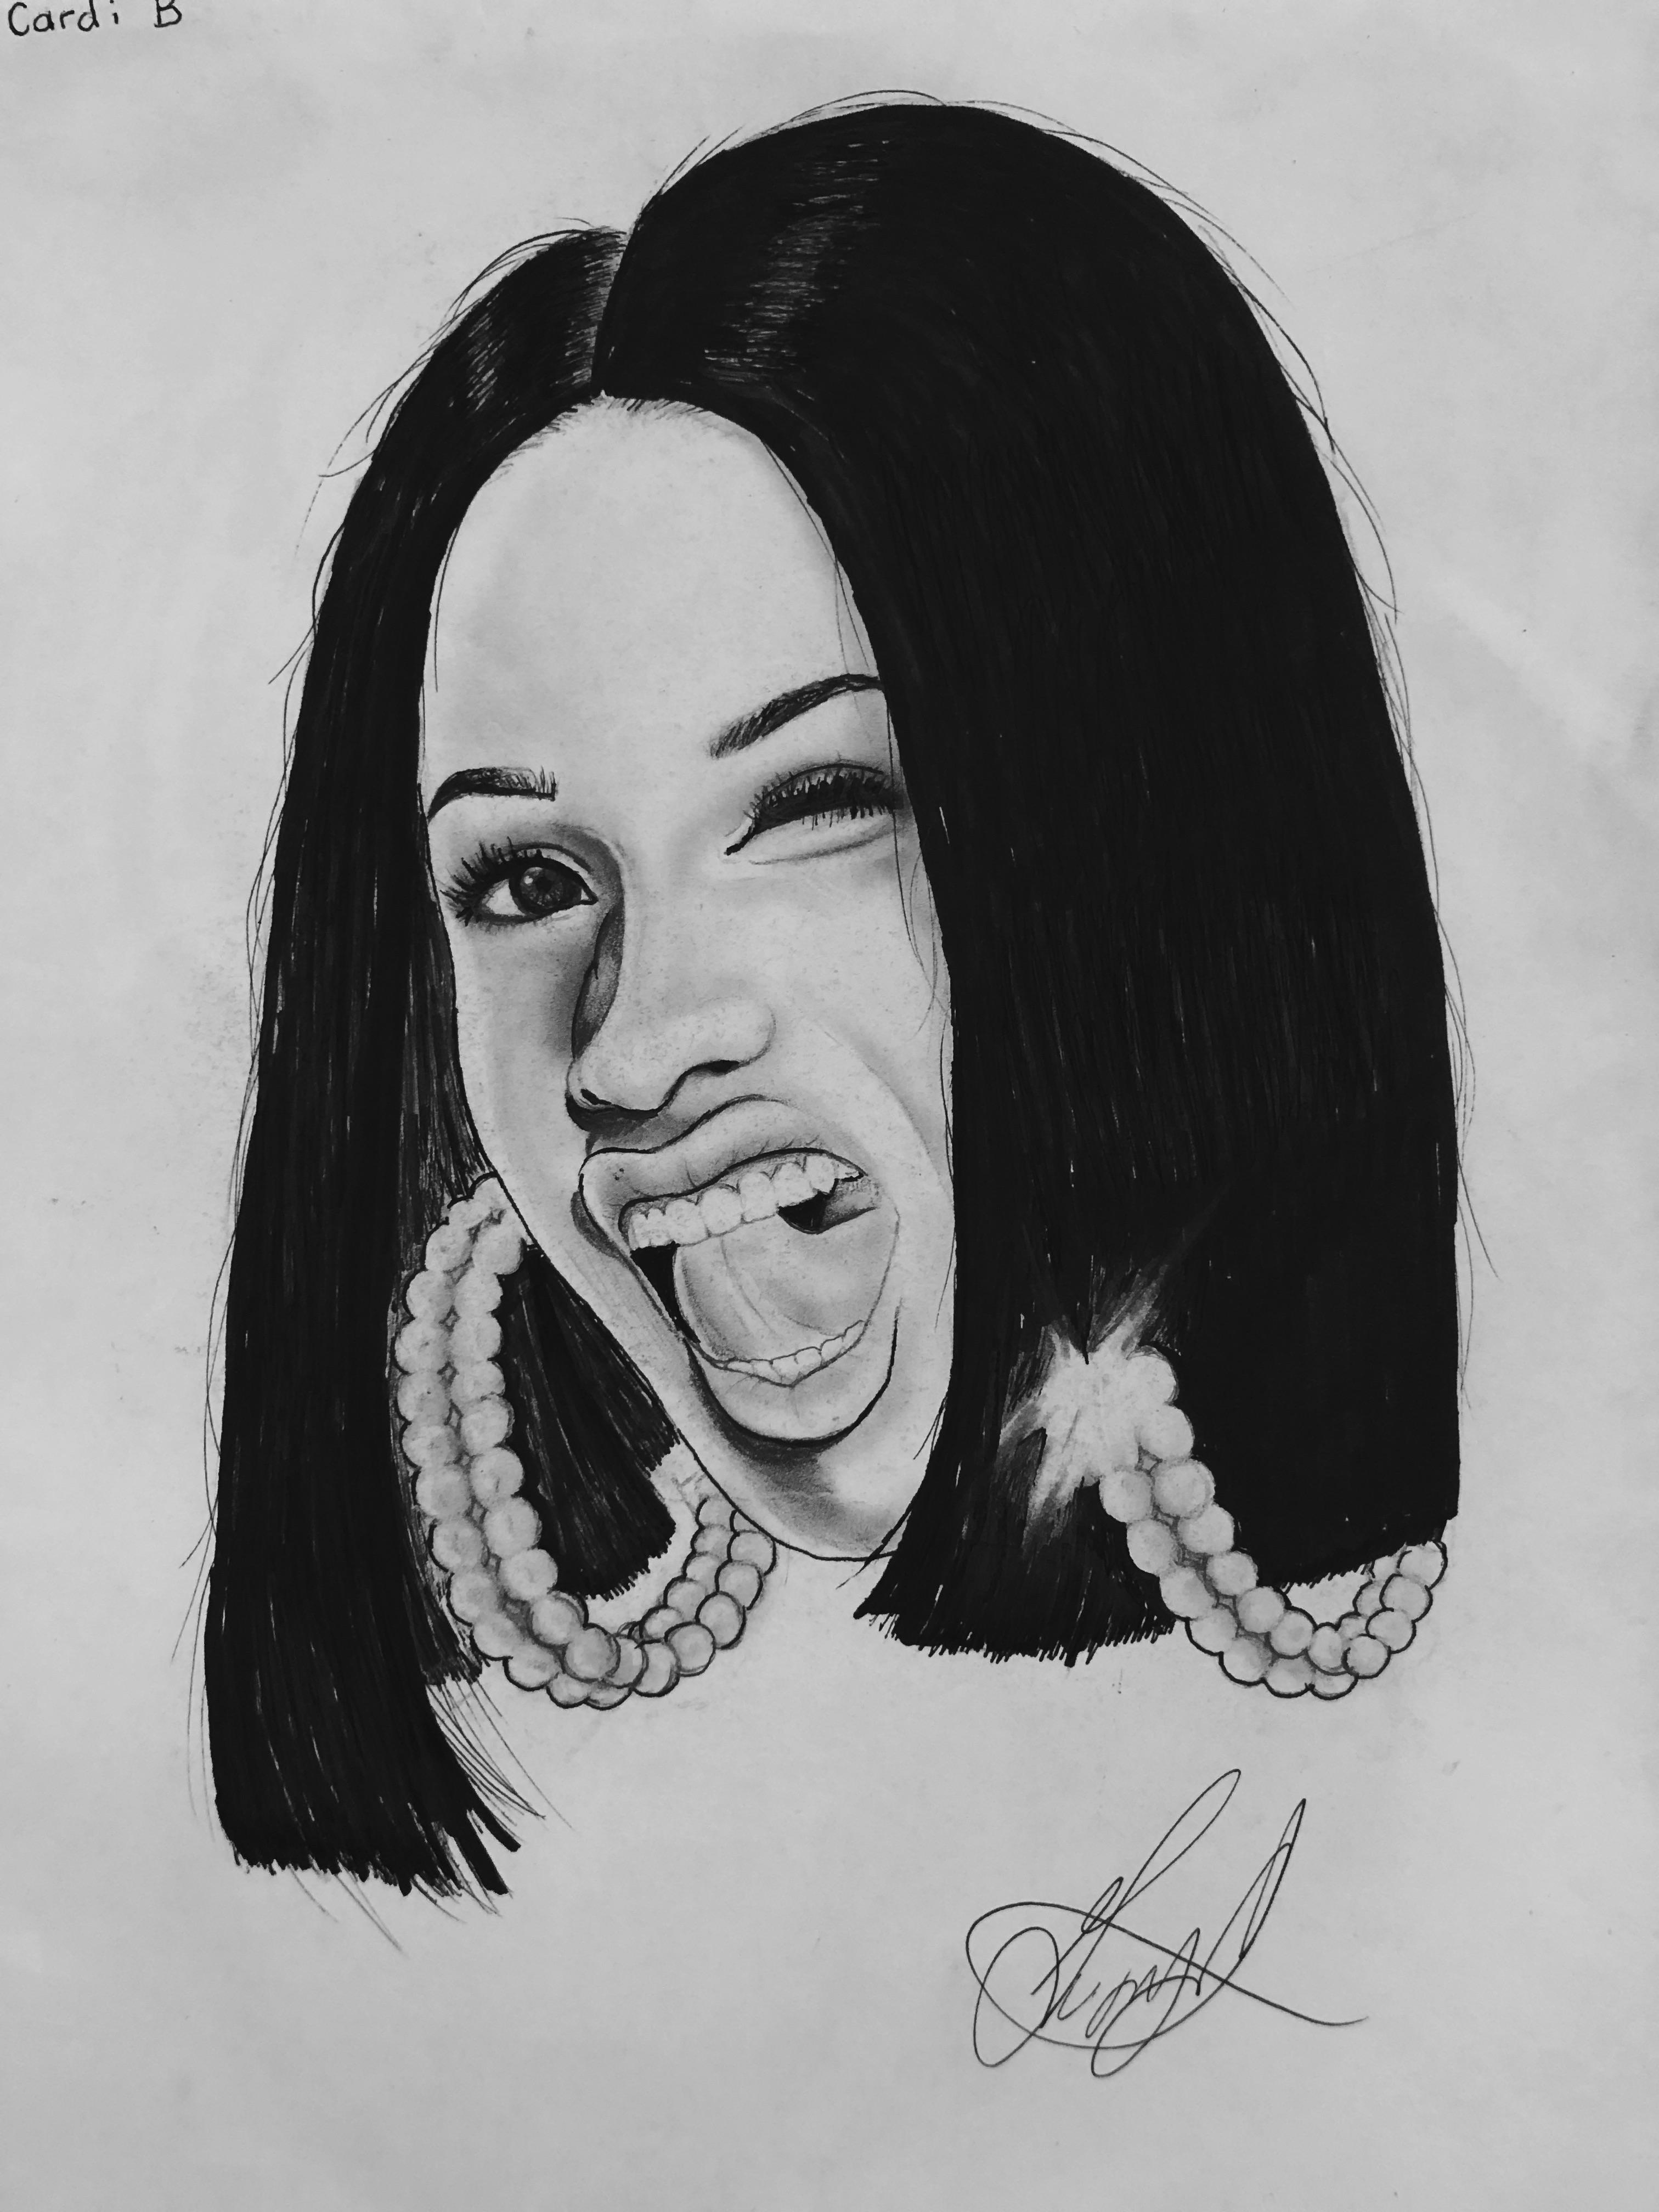 Cardi B Drawing : cardi, drawing, Cardi, Portrait, Regular, Pencil,, Sharpie, Drawing